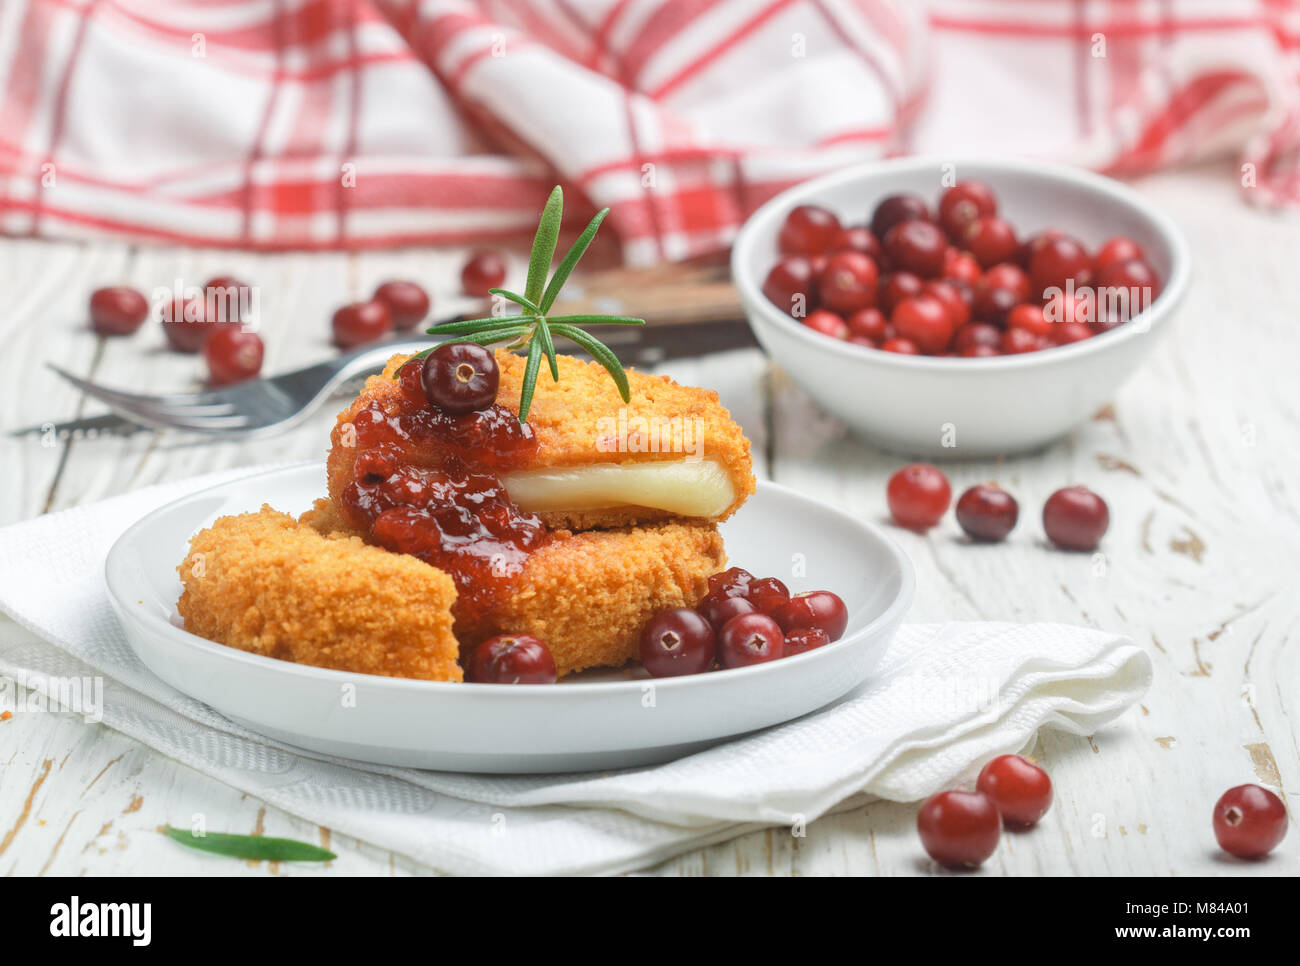 Baked breaded Camembert cheese (brie) with fresh berries and cranberry sauce with rosemary on a white background. - Stock Image